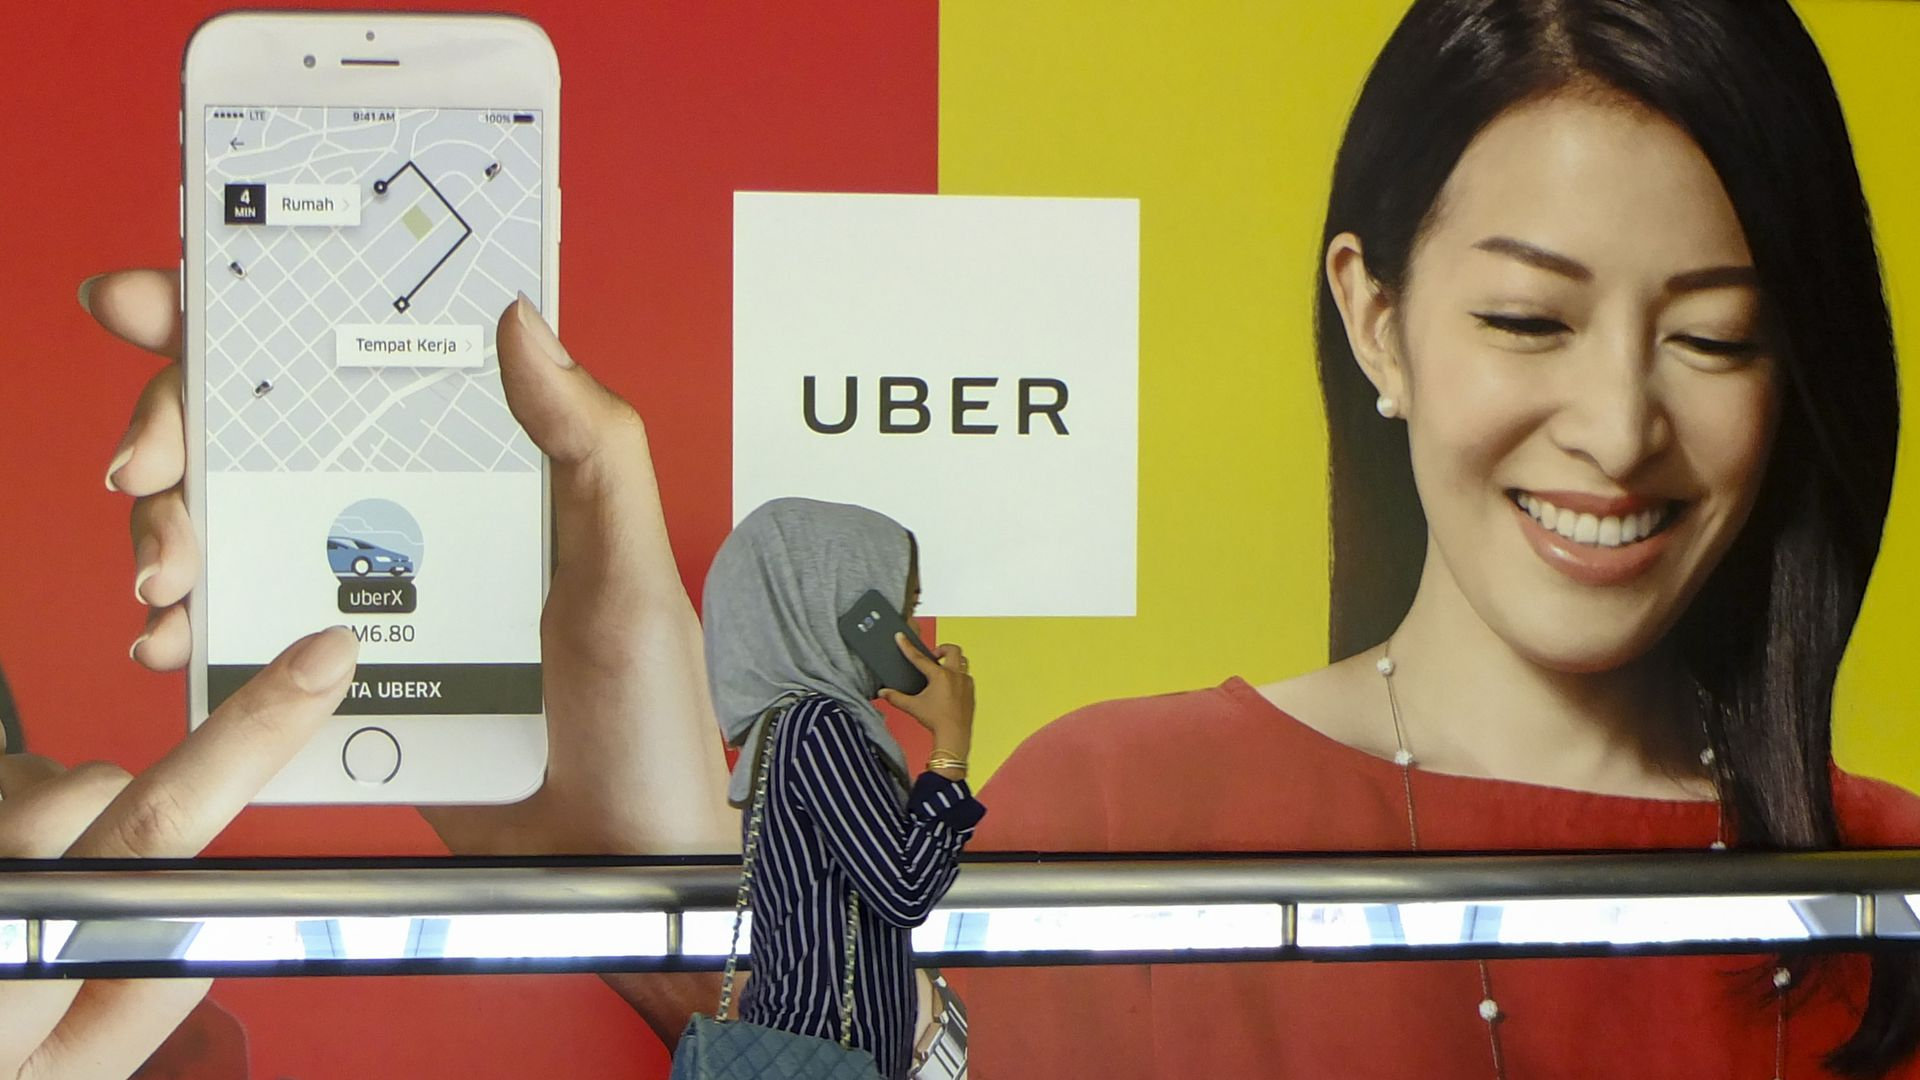 A woman on the phone walks by an Uber advertisement.